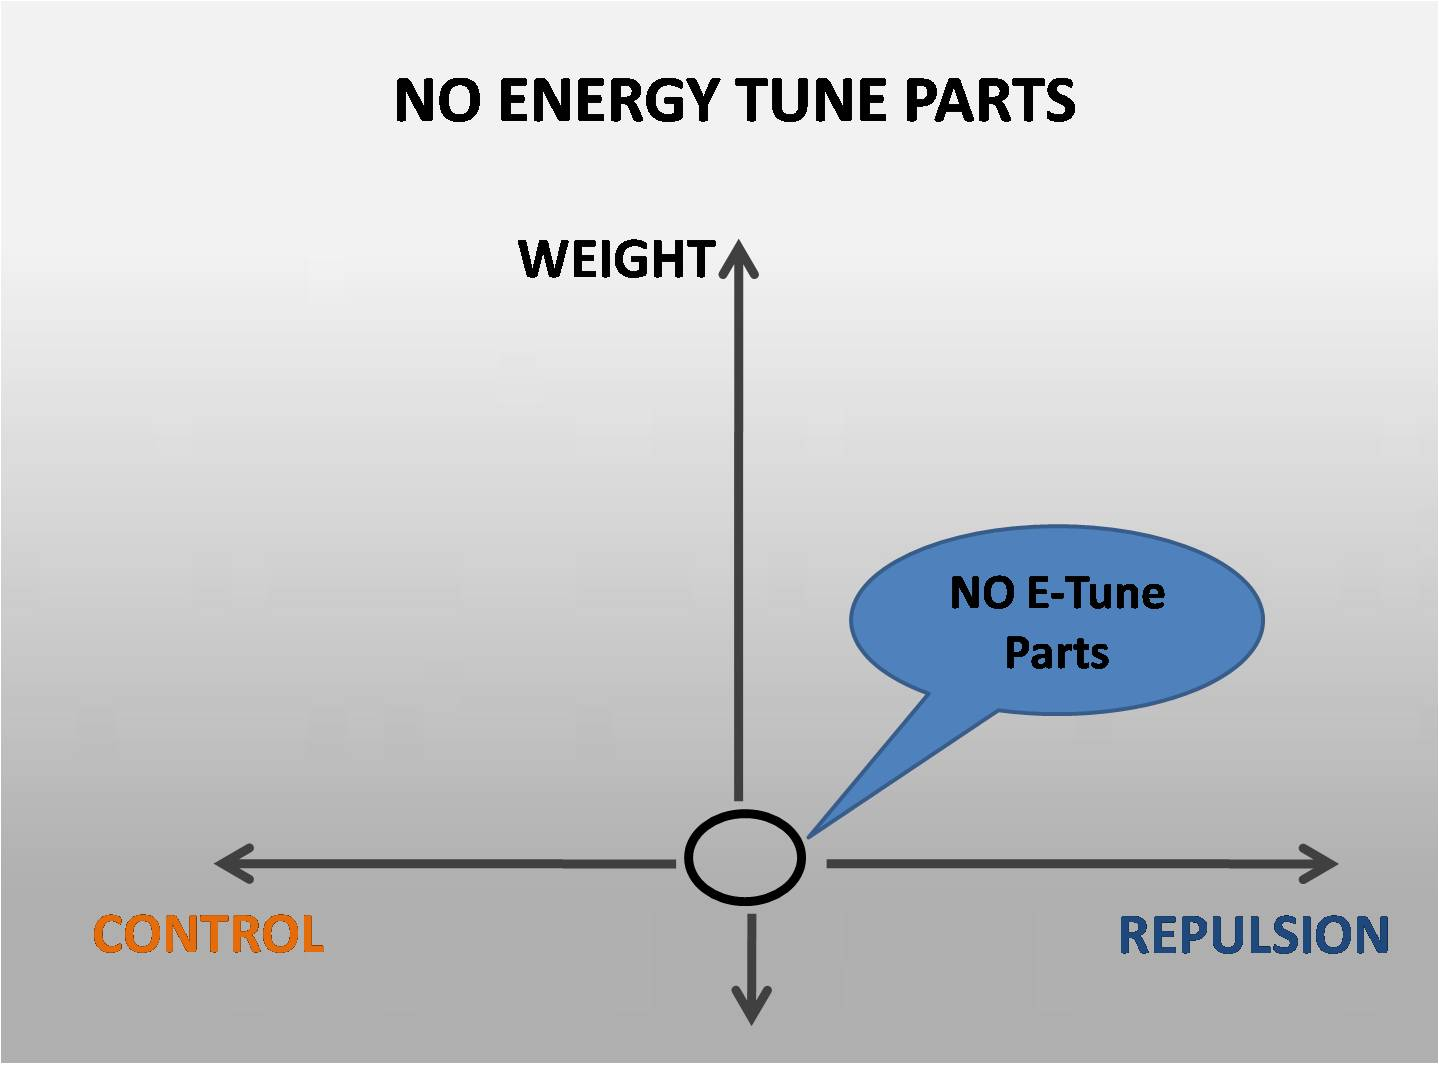 NO ENERGY TUNE PARTS